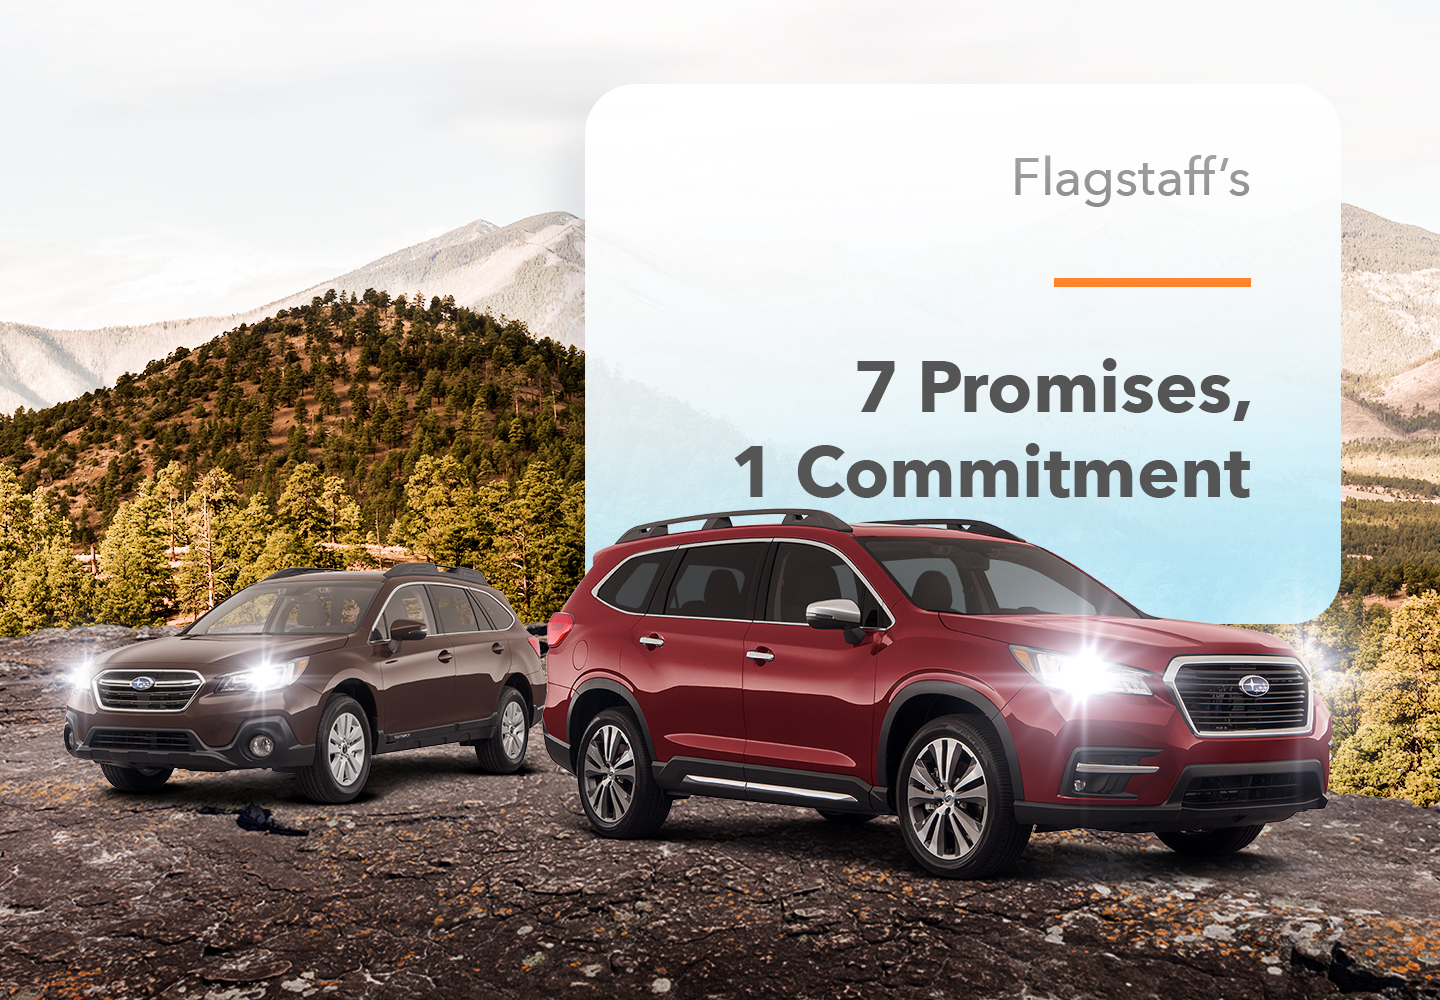 Flagstaff's 7 Promises & 1 Commitment